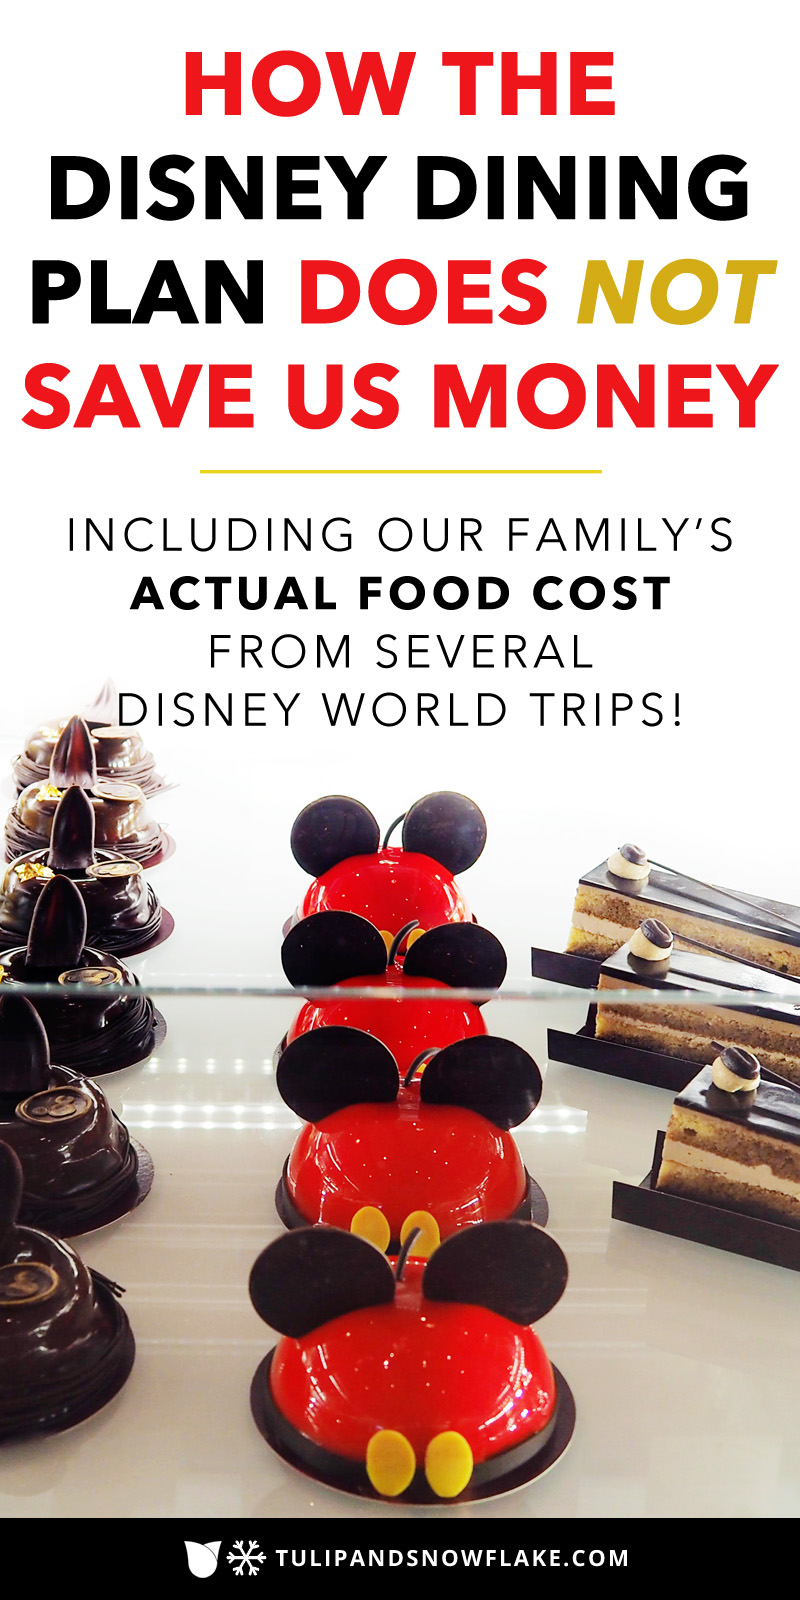 How the Disney Dining Plan does not save us money